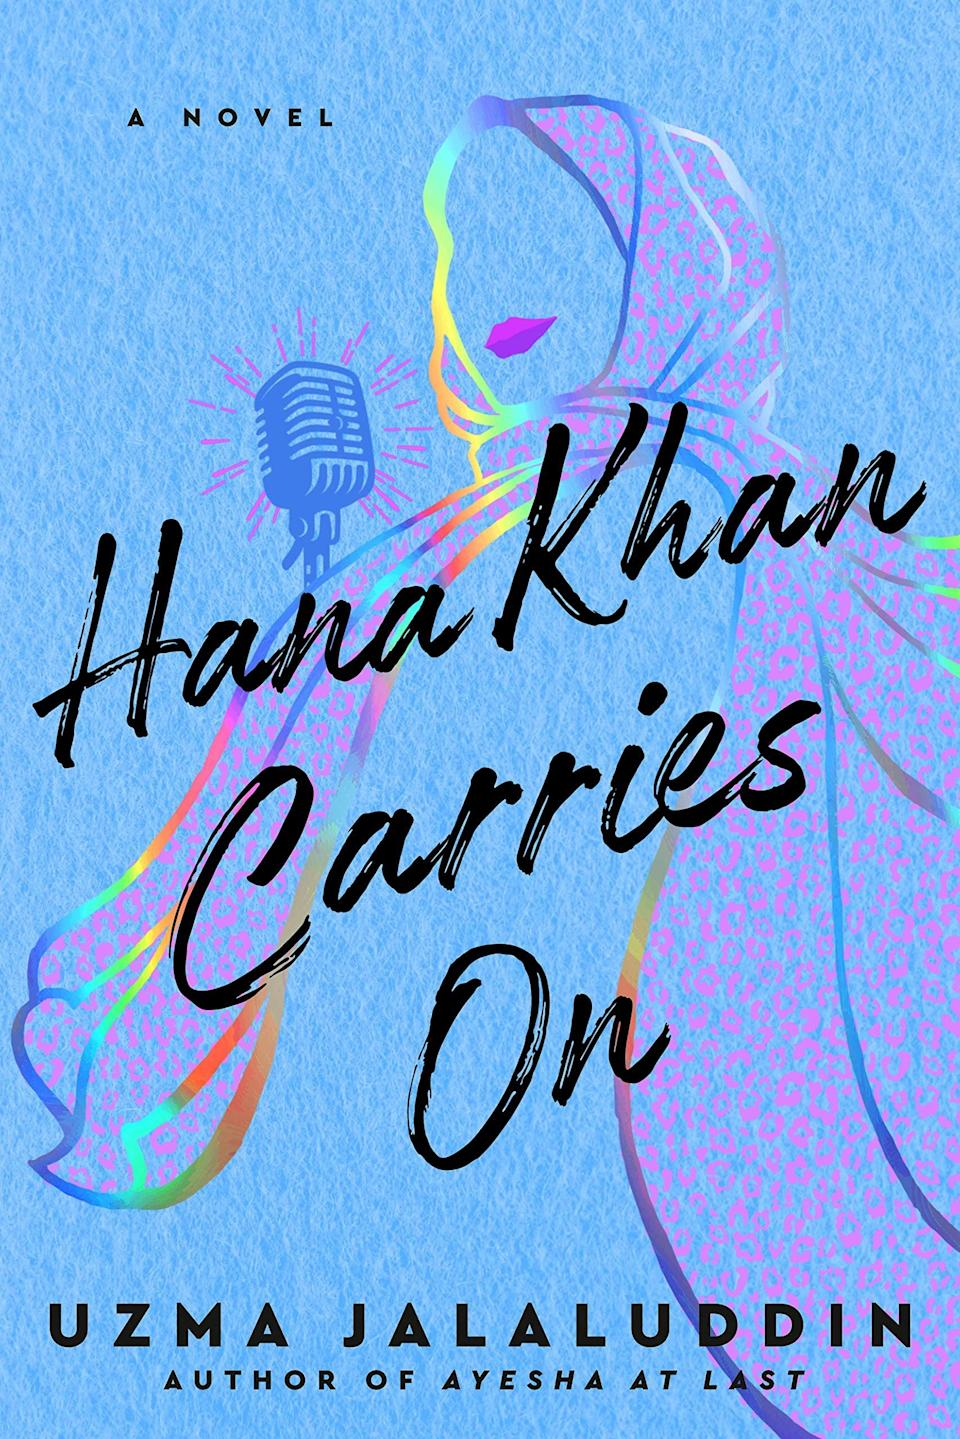 <p>There's a dash of <strong>You've Got Mail</strong> sprinkled into Uzma Jalaluddin's lovely <span><strong>Hana Khan Carries On</strong></span>. Hana works at Three Sisters Biryani Poutine, the only halal restaurant in her neighborhood, but she dreams of a job working at the local radio station. For now she's content with her podcast, at least she is until another halal restaurant opens across the street with an attractive owner who she just can't seem to avoid. Now Hana will have to use her platform to save the restaurant where she works, while also fighting off those pesky feelings for the competition. </p> <p><em>Out April 6</em></p>